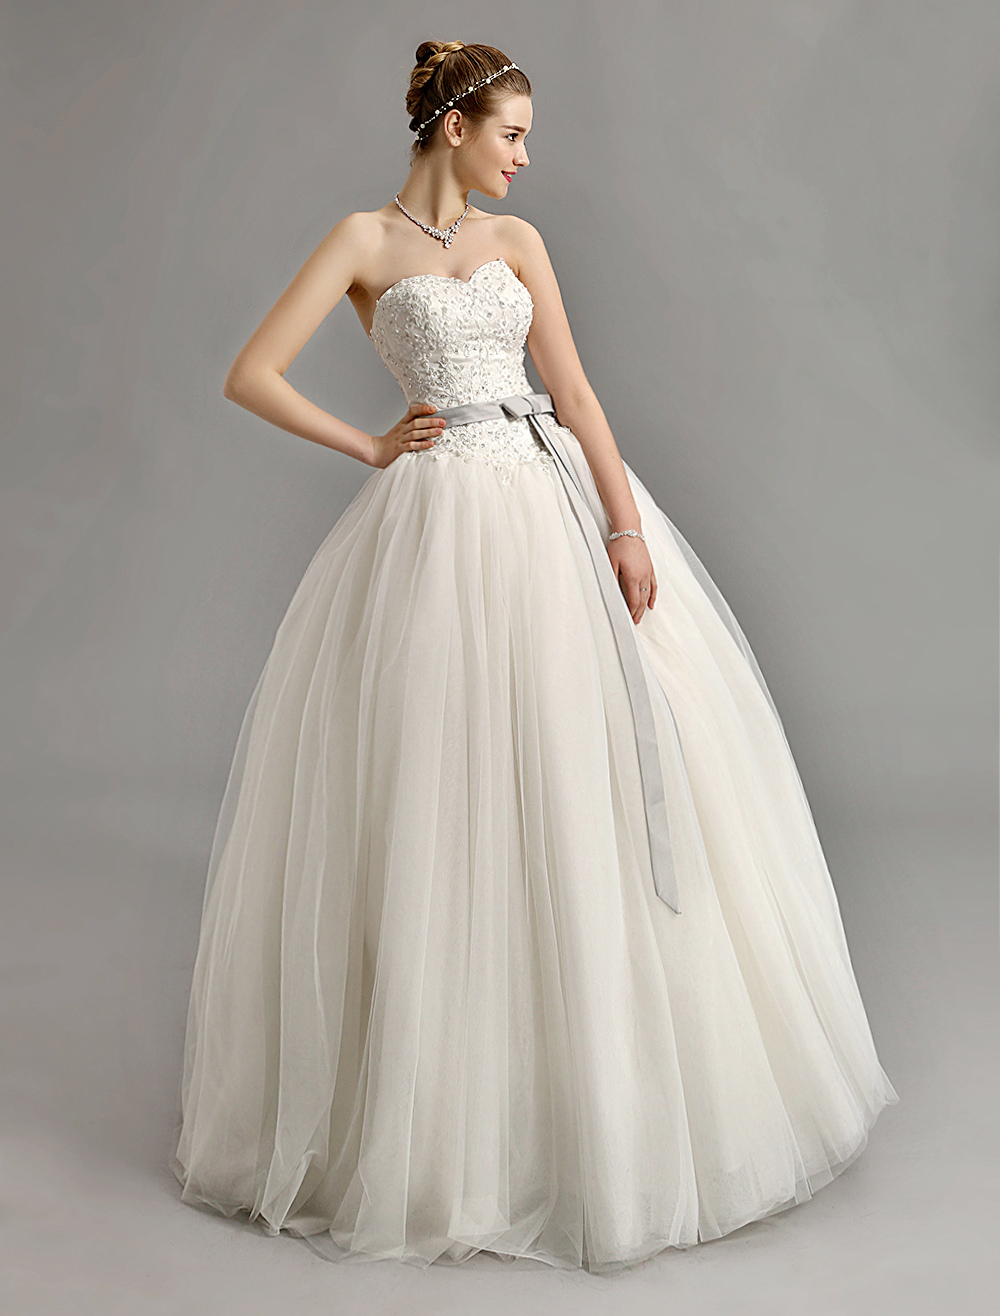 Sweetheart Ball Gown Wedding Dress with Colored Sash Milanoo ...